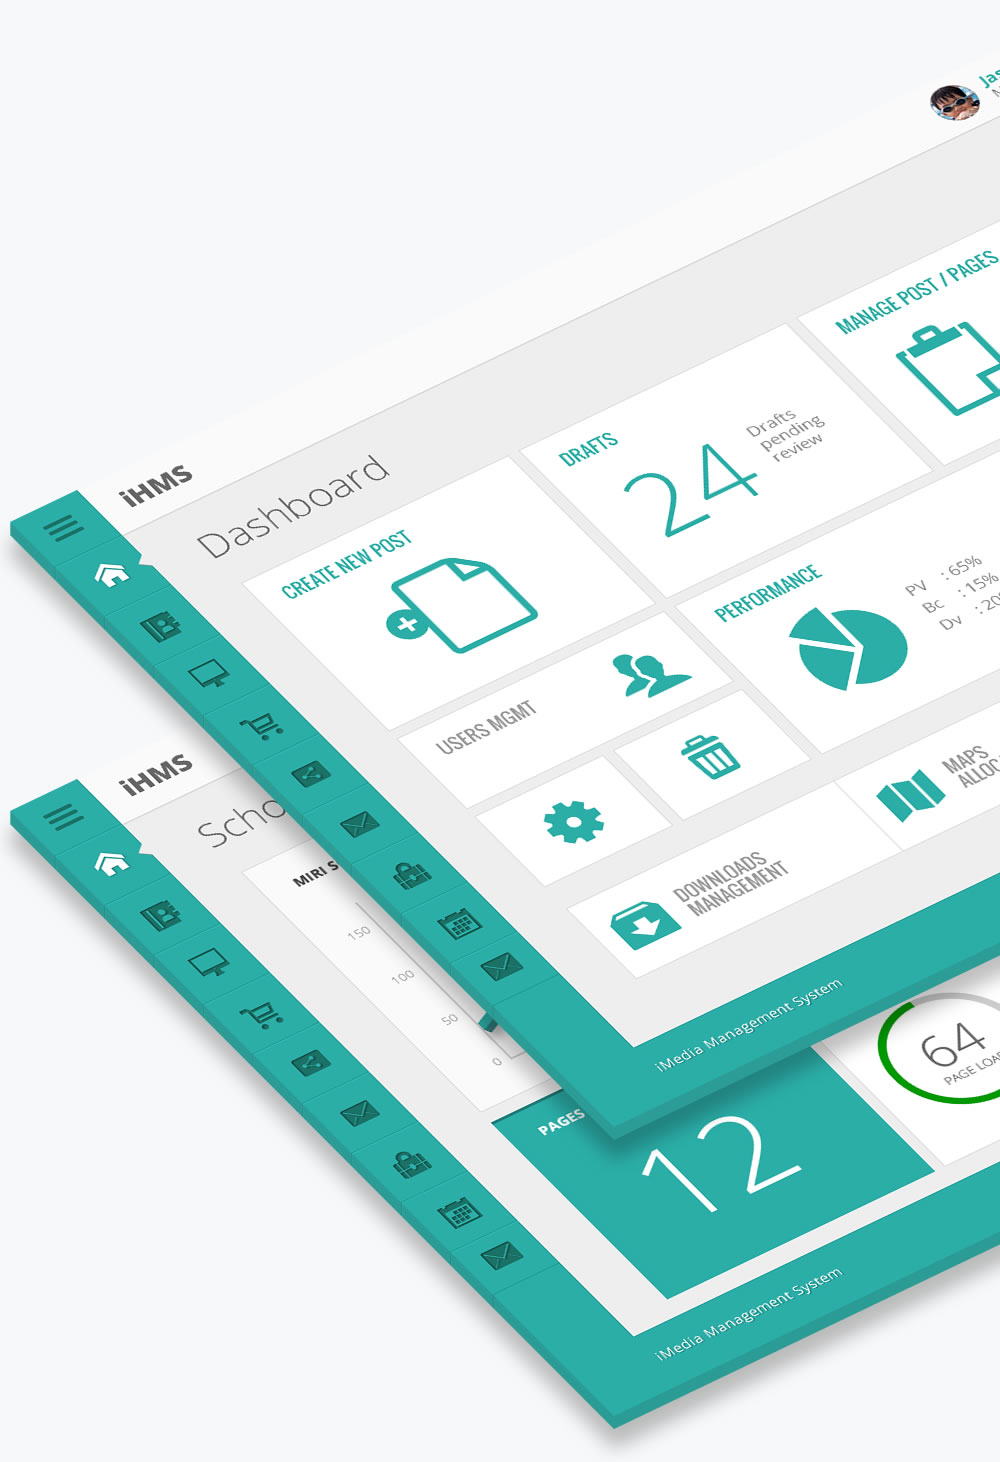 admin dashboard design on isometric view